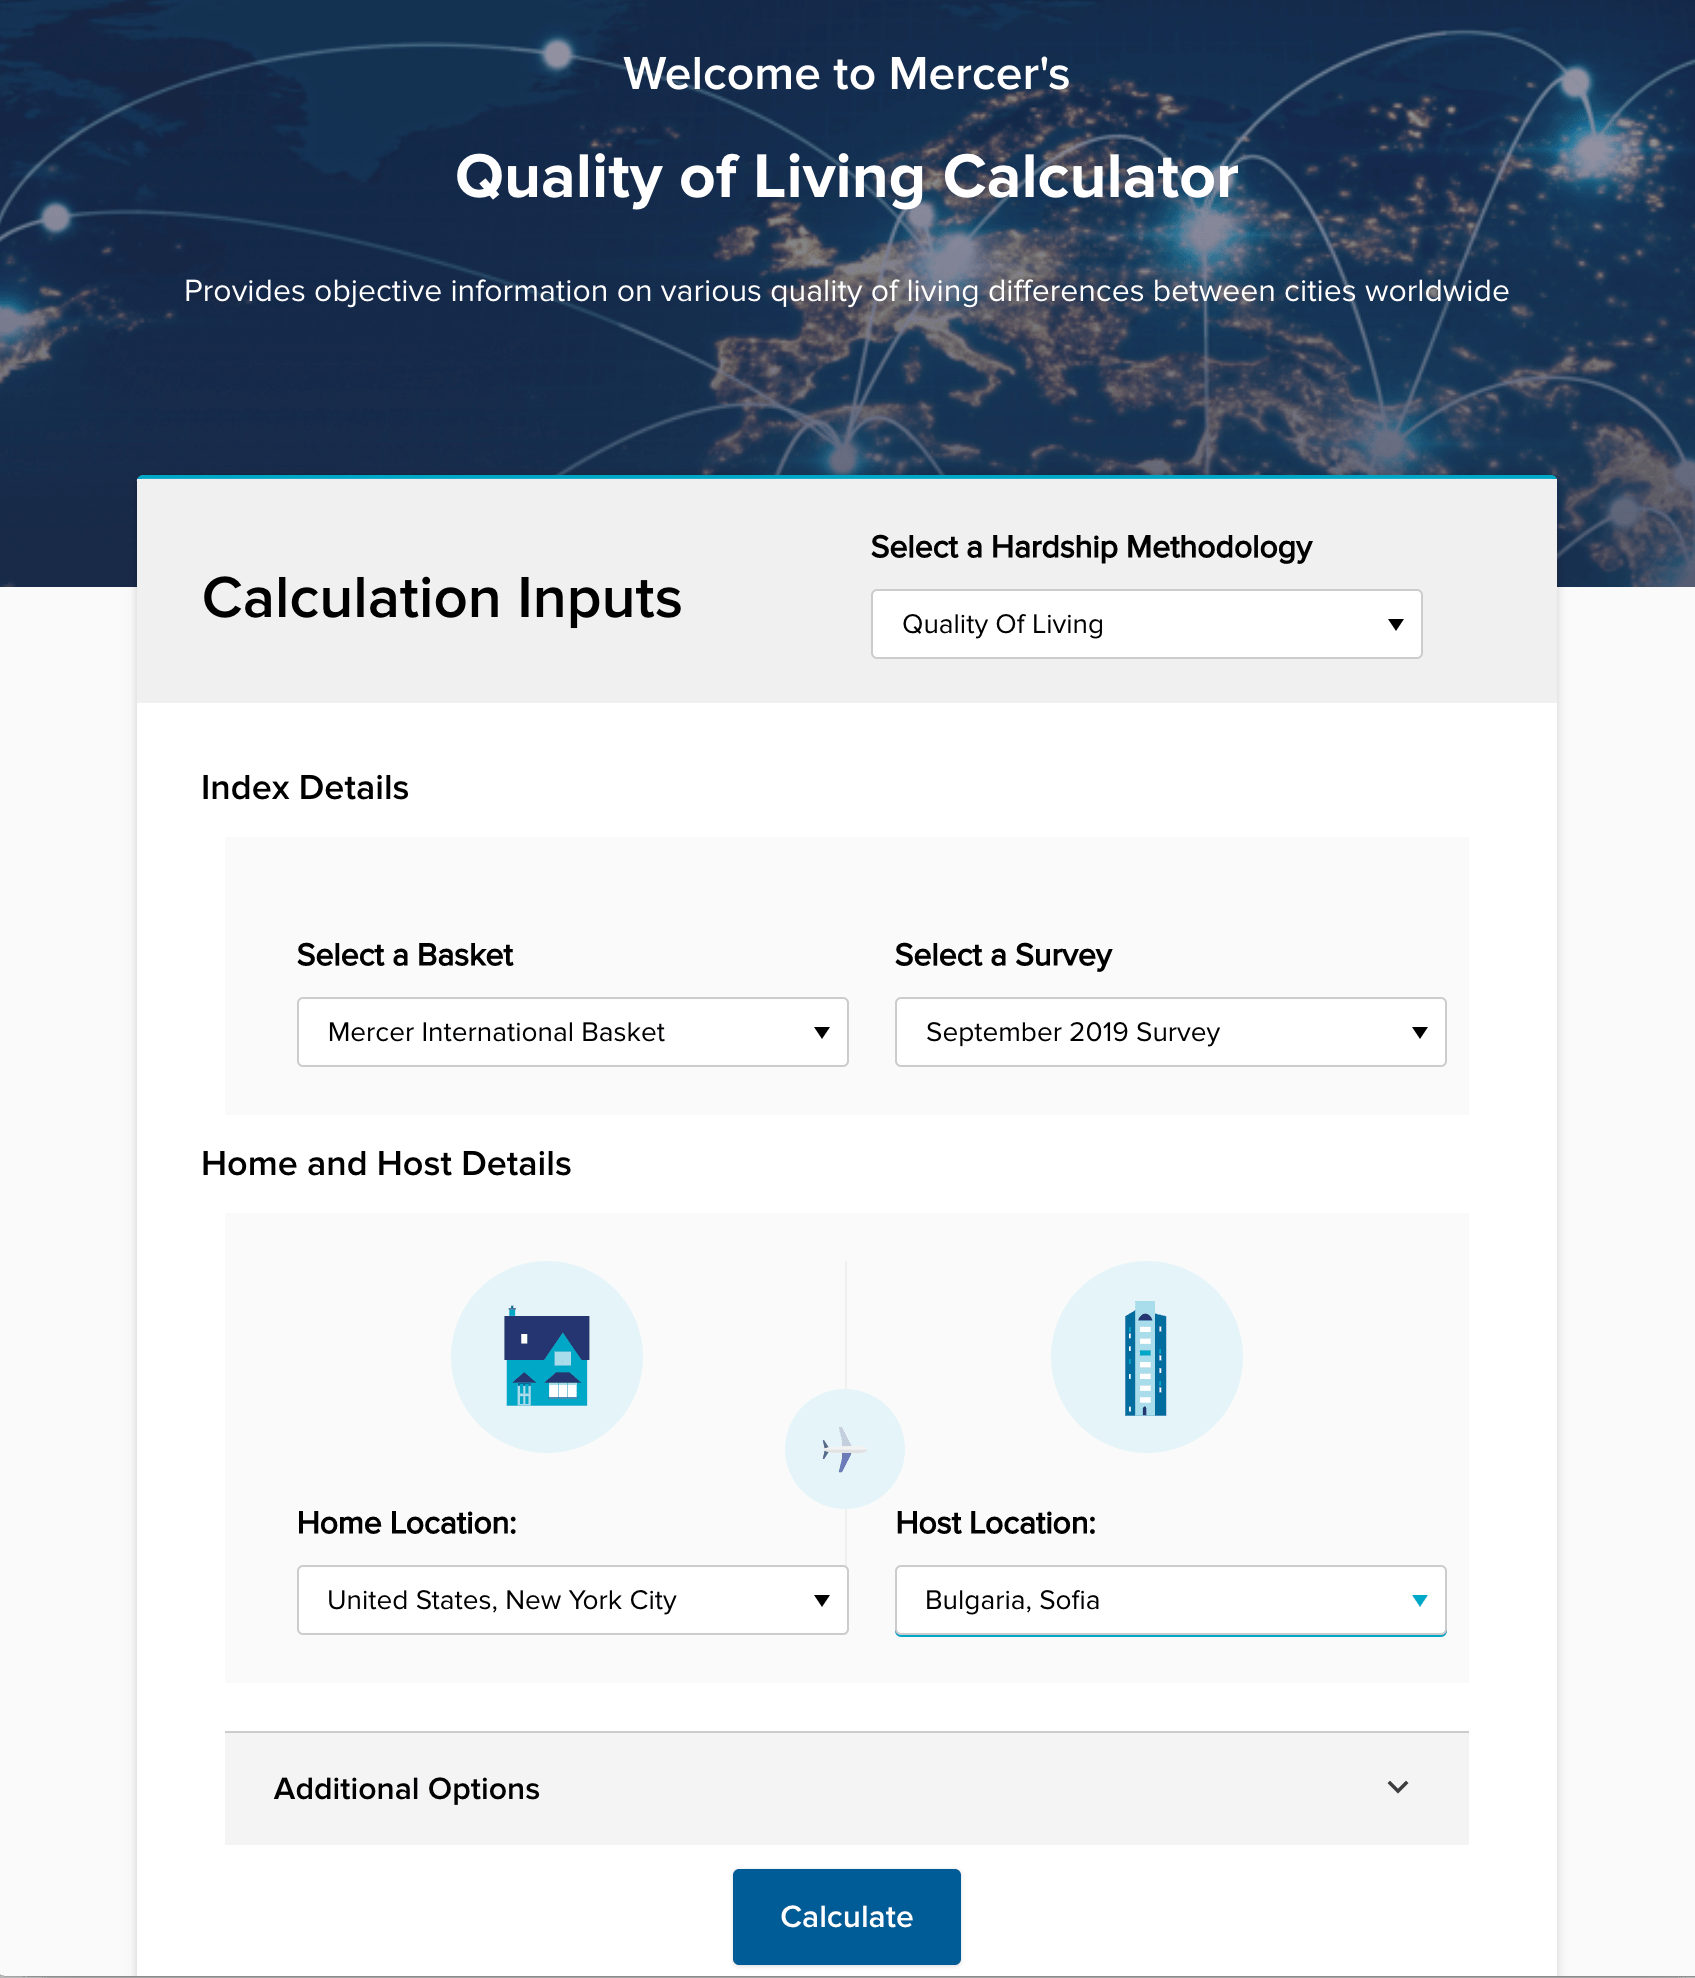 Quality of Living Calculator - Welcome screen